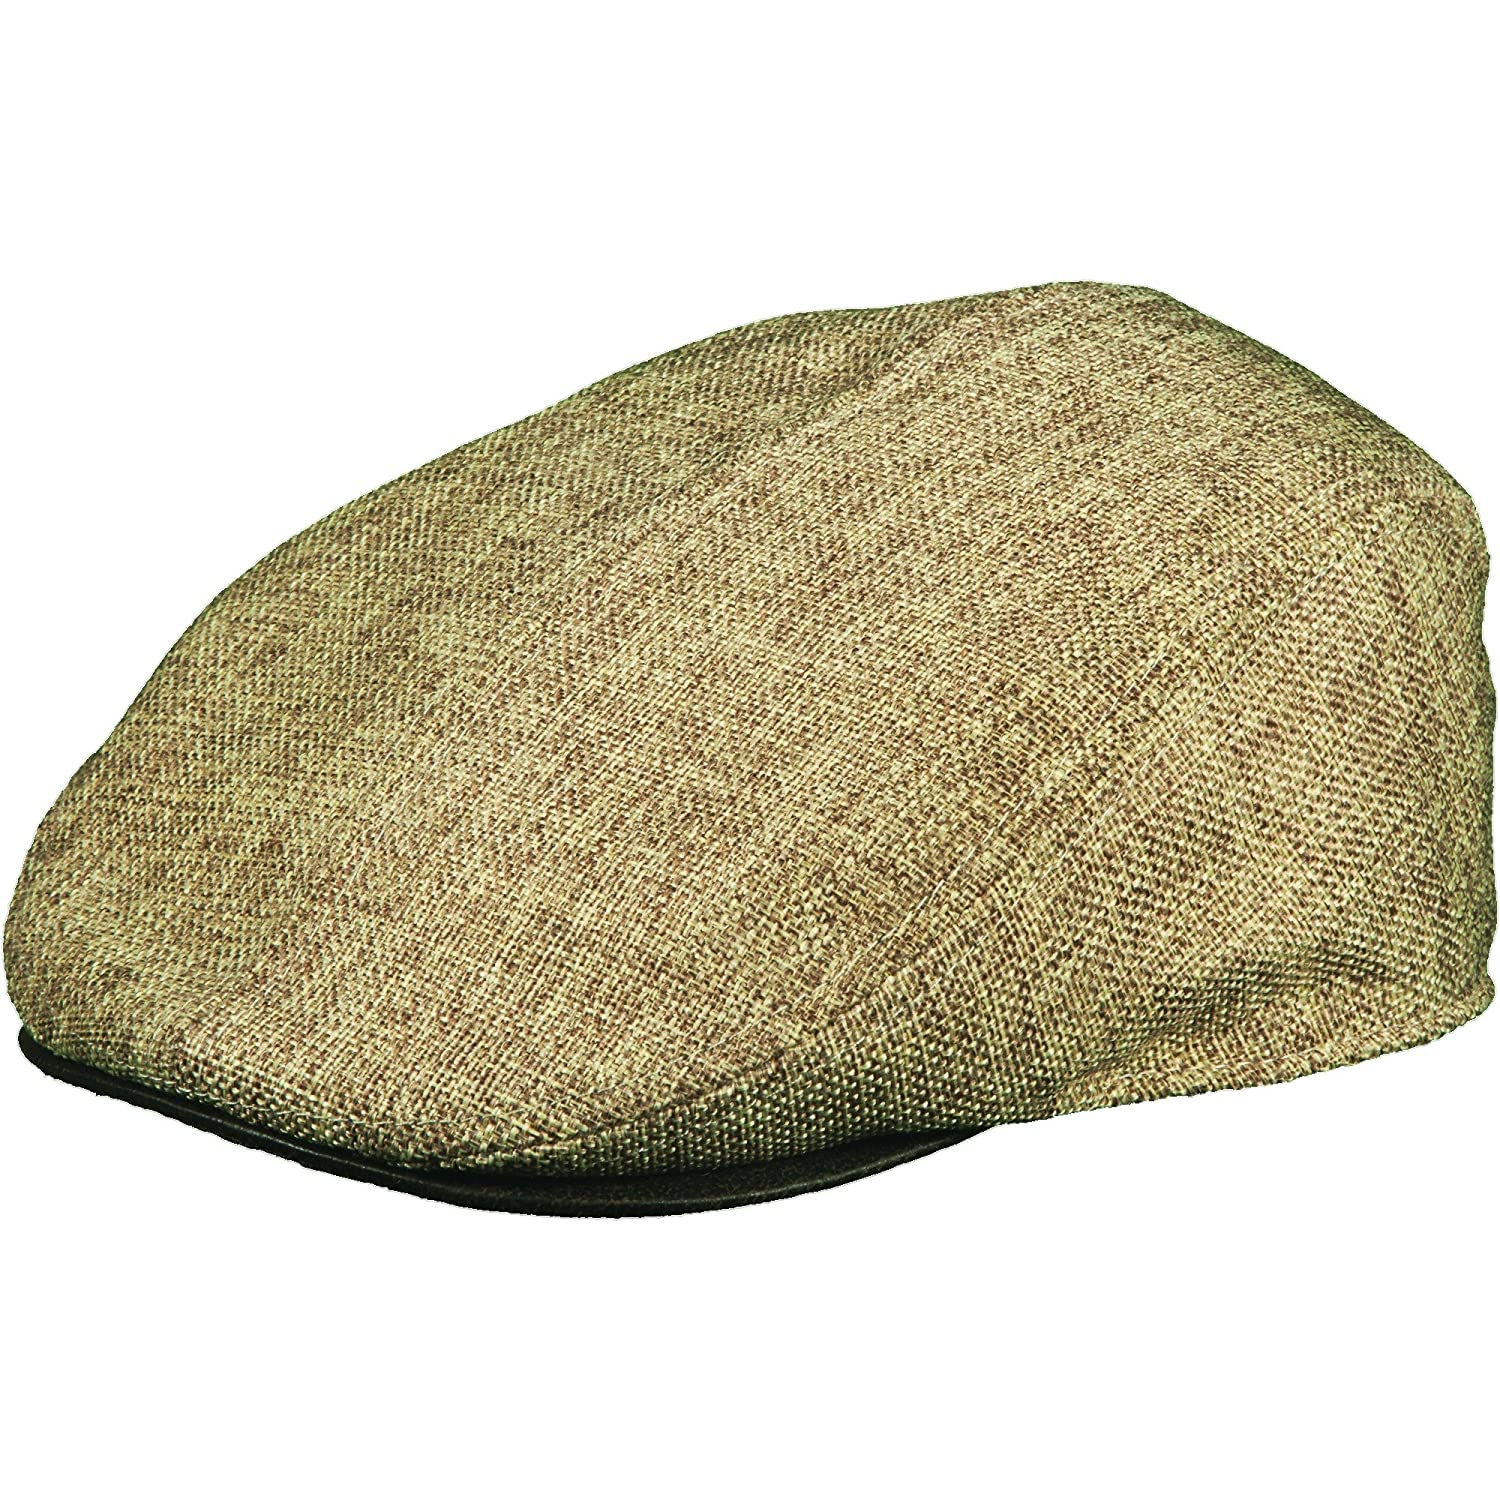 2bd47321a4e23f Stetson Men's Textured Reeded Fabric Ivy Hat at Amazon Men's Clothing store: